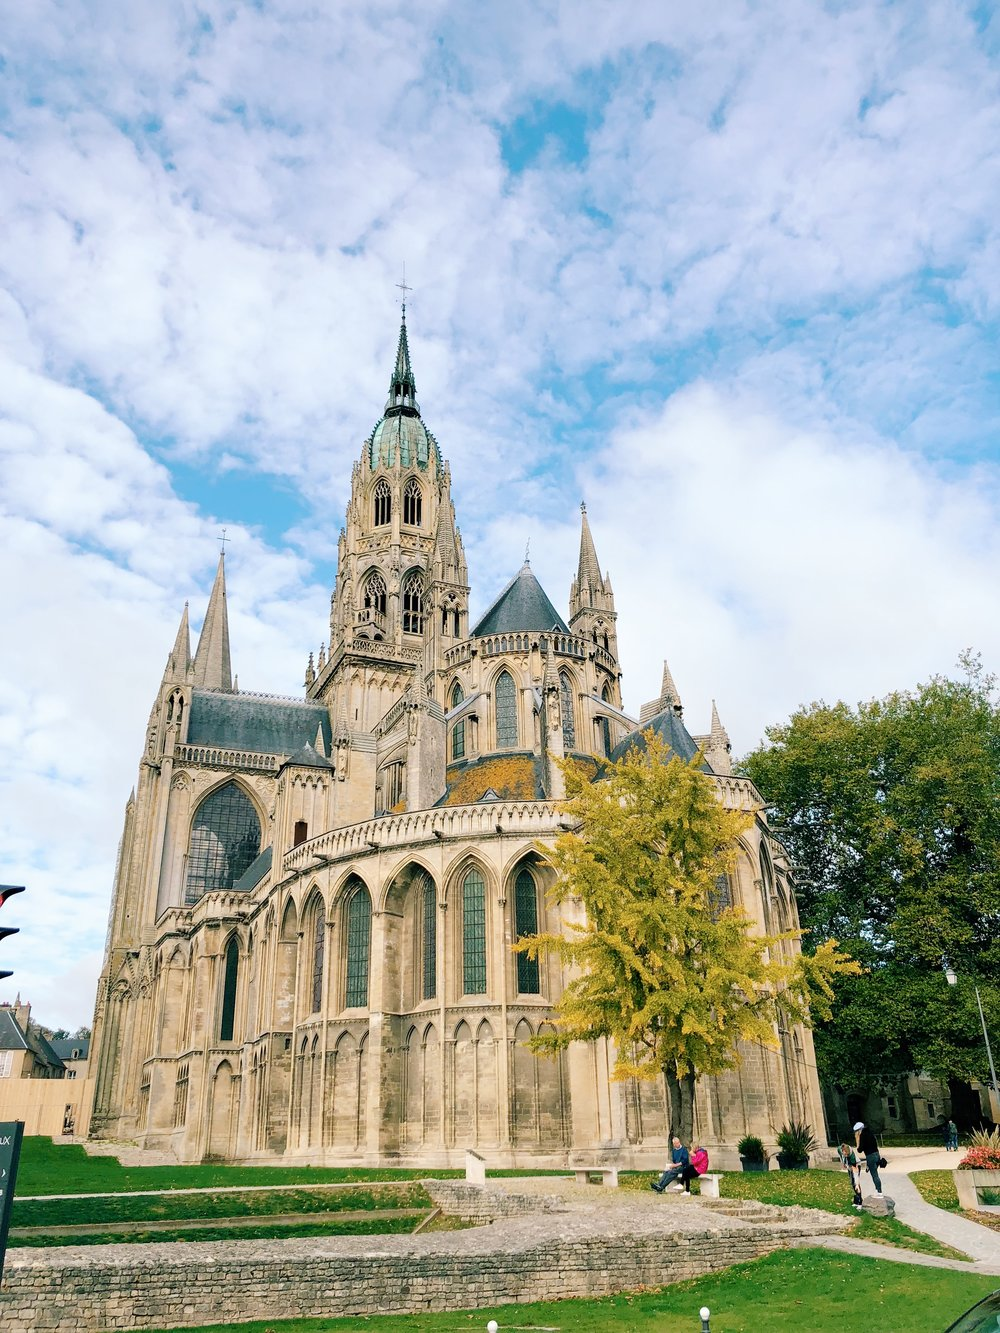 France has such beauty and history.